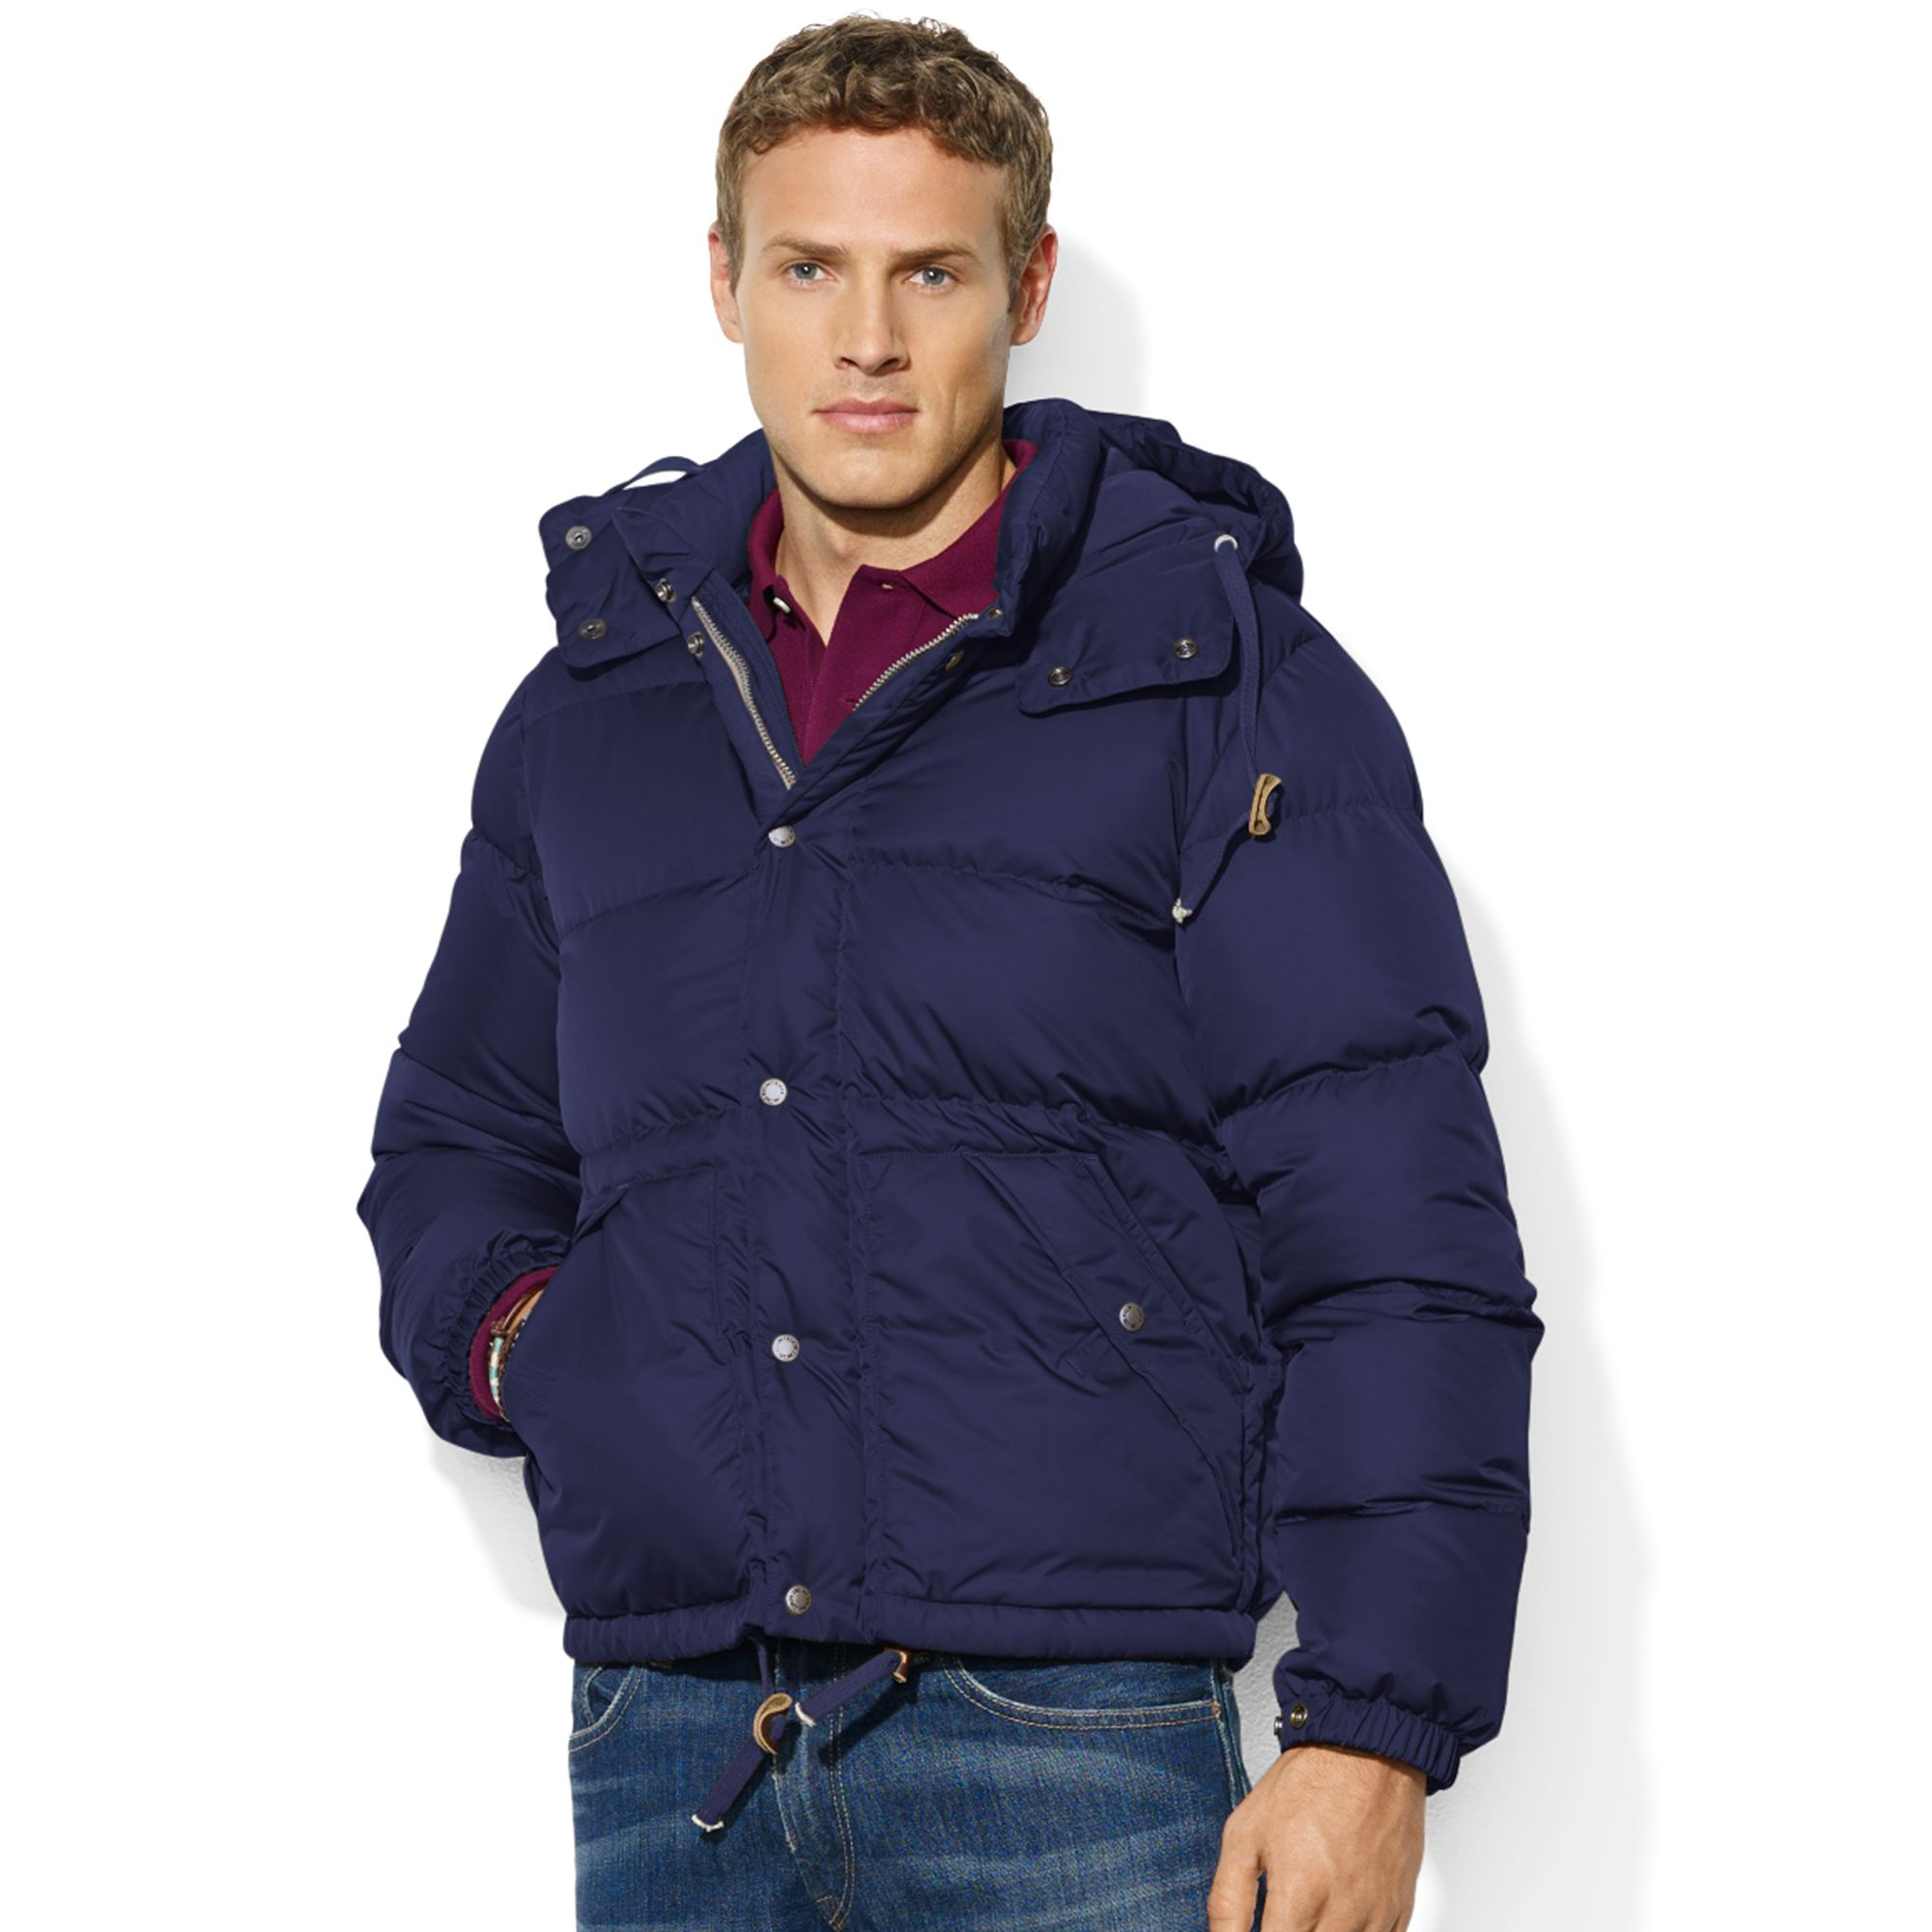 eecf72e8 Men's Jackets & Coats from Ralph Lauren, ralph lauren aviator jacket